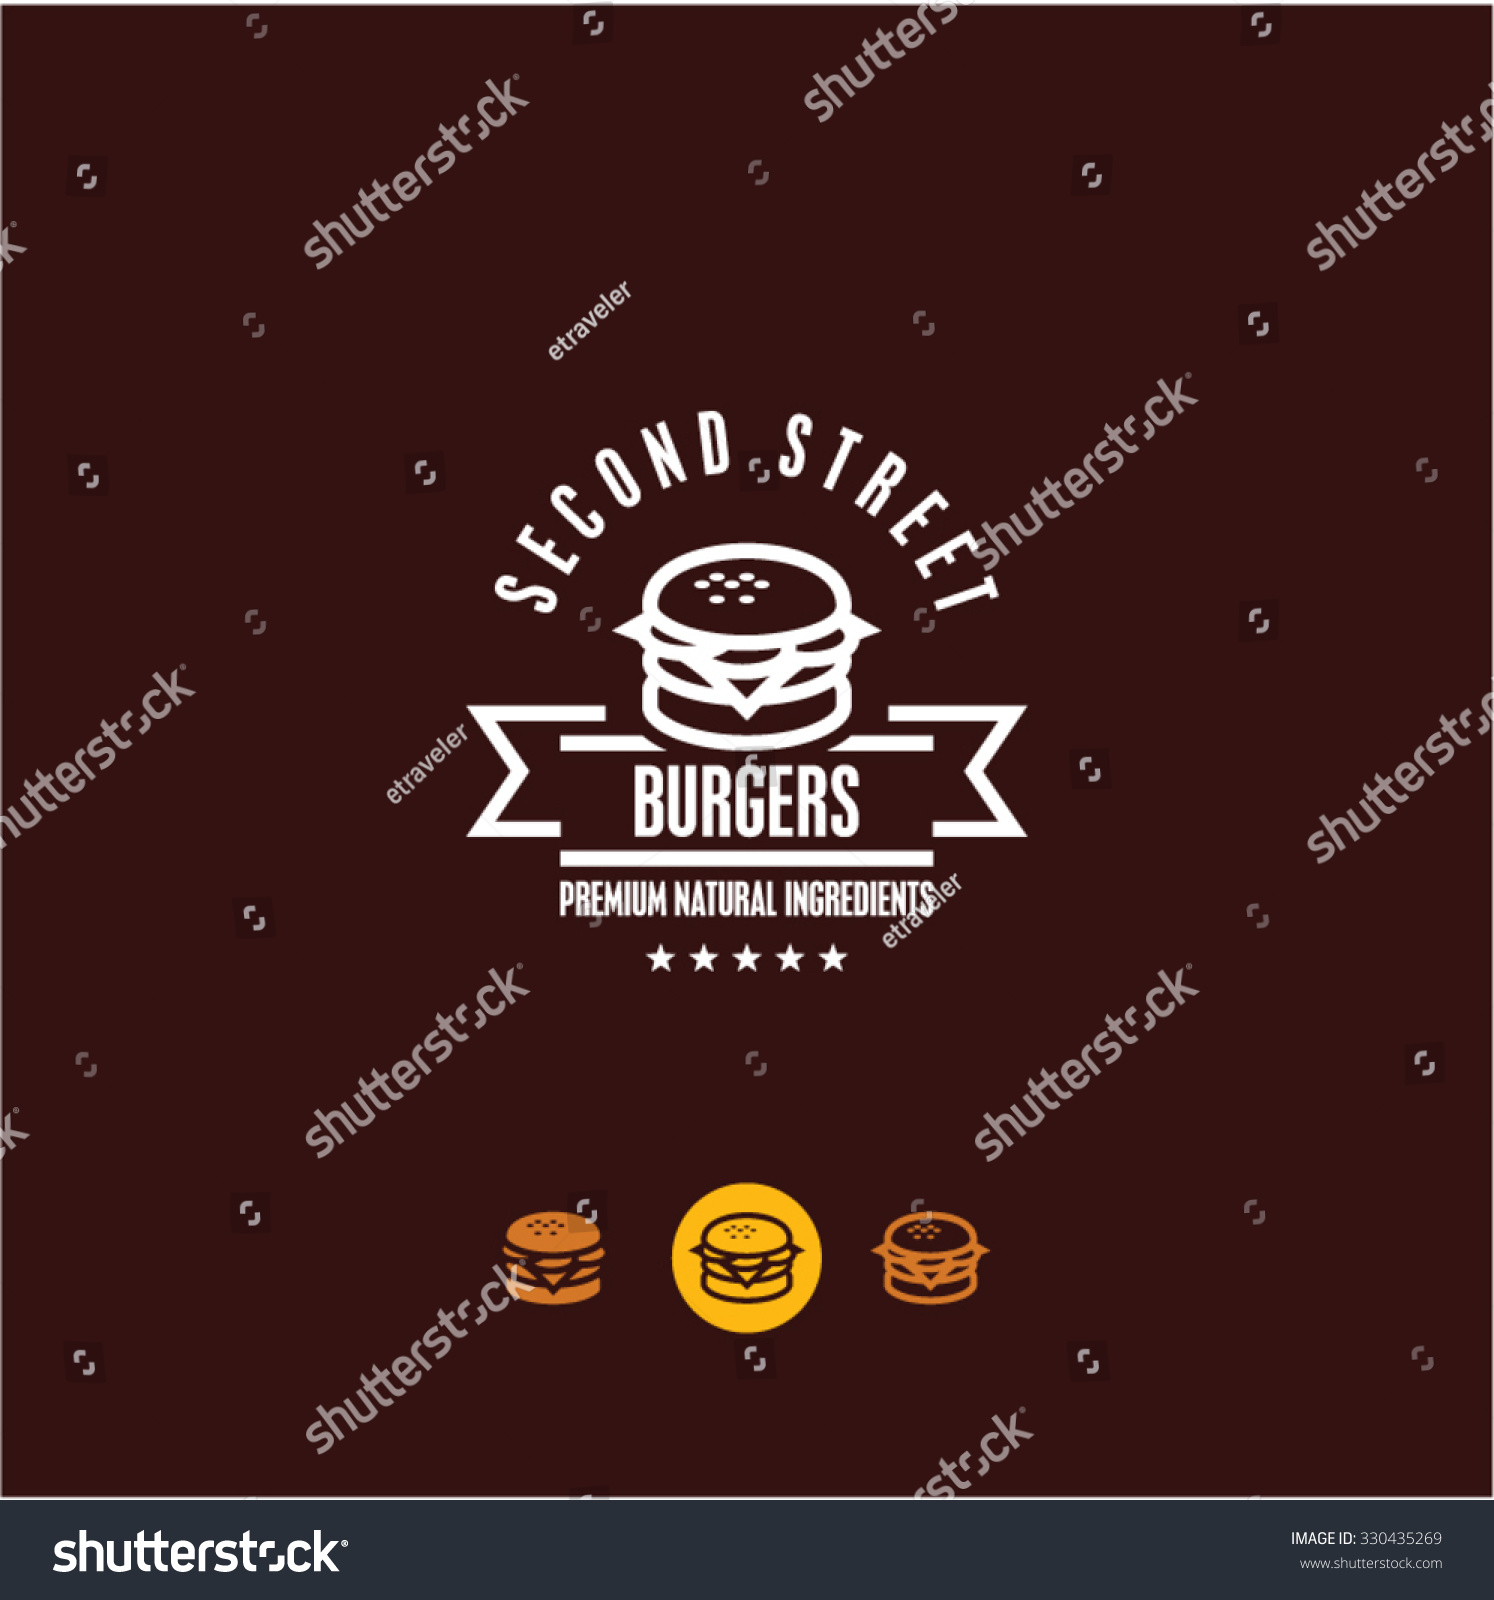 burger logo burger icon fast food snacks